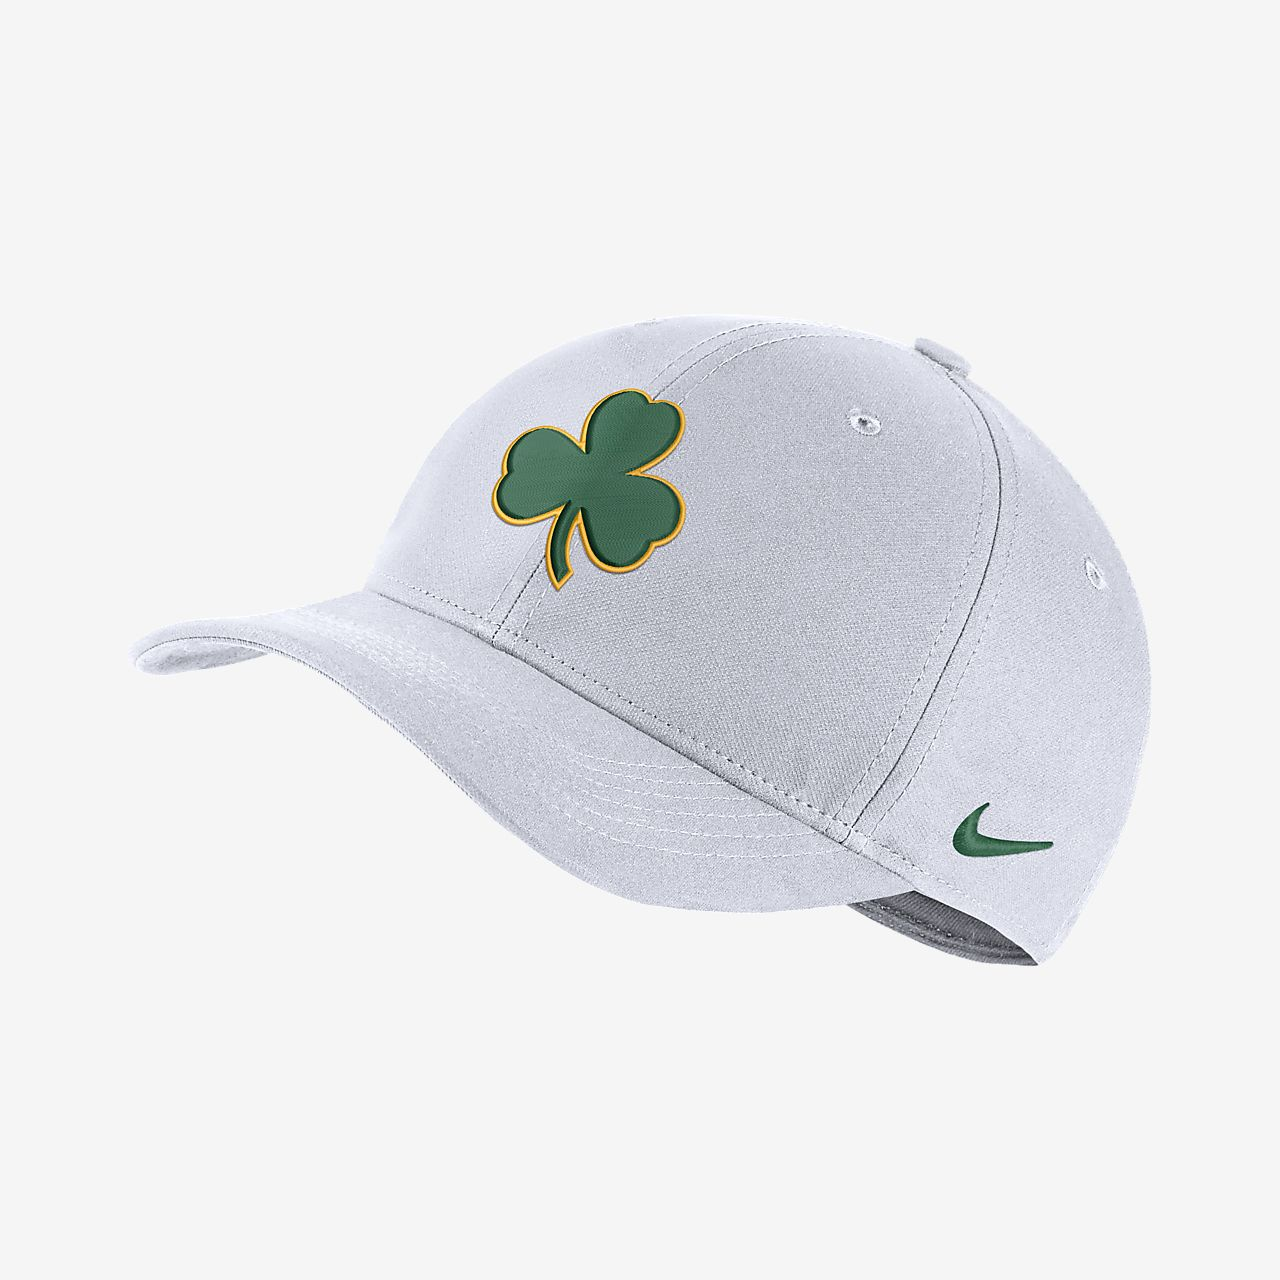 Cappello Boston Celtics City Edition Nike AeroBill Classic99 NBA ... 833de637d3a2